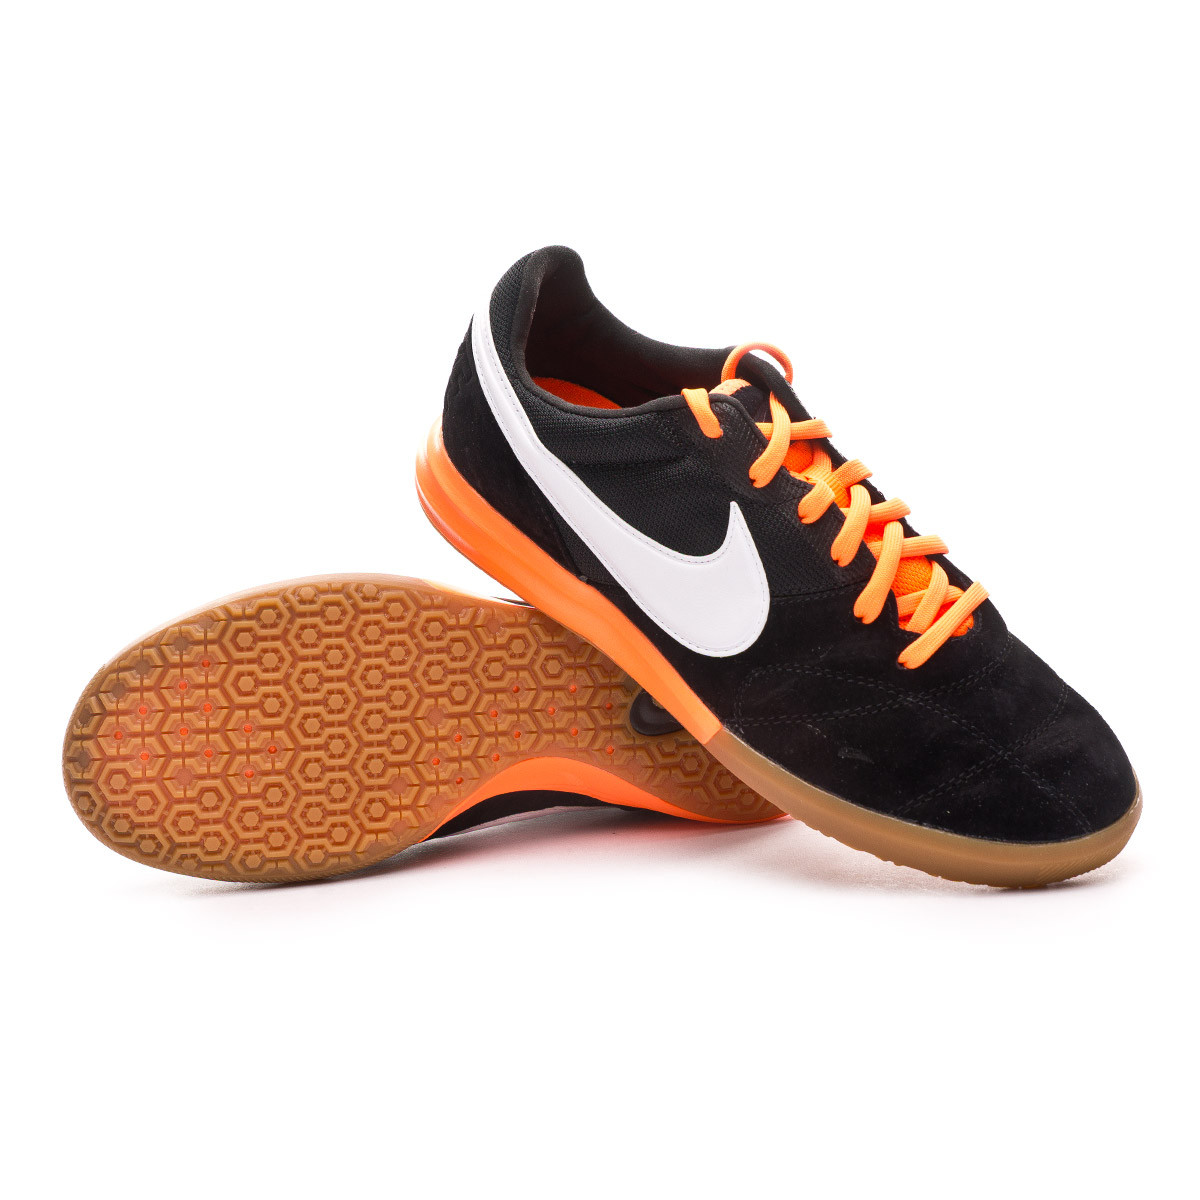 Original Casa de la carretera Pronombre  Futsal Boot Nike Tiempo Premier II Sala IC Black-White-Total orange -  Football store Fútbol Emotion